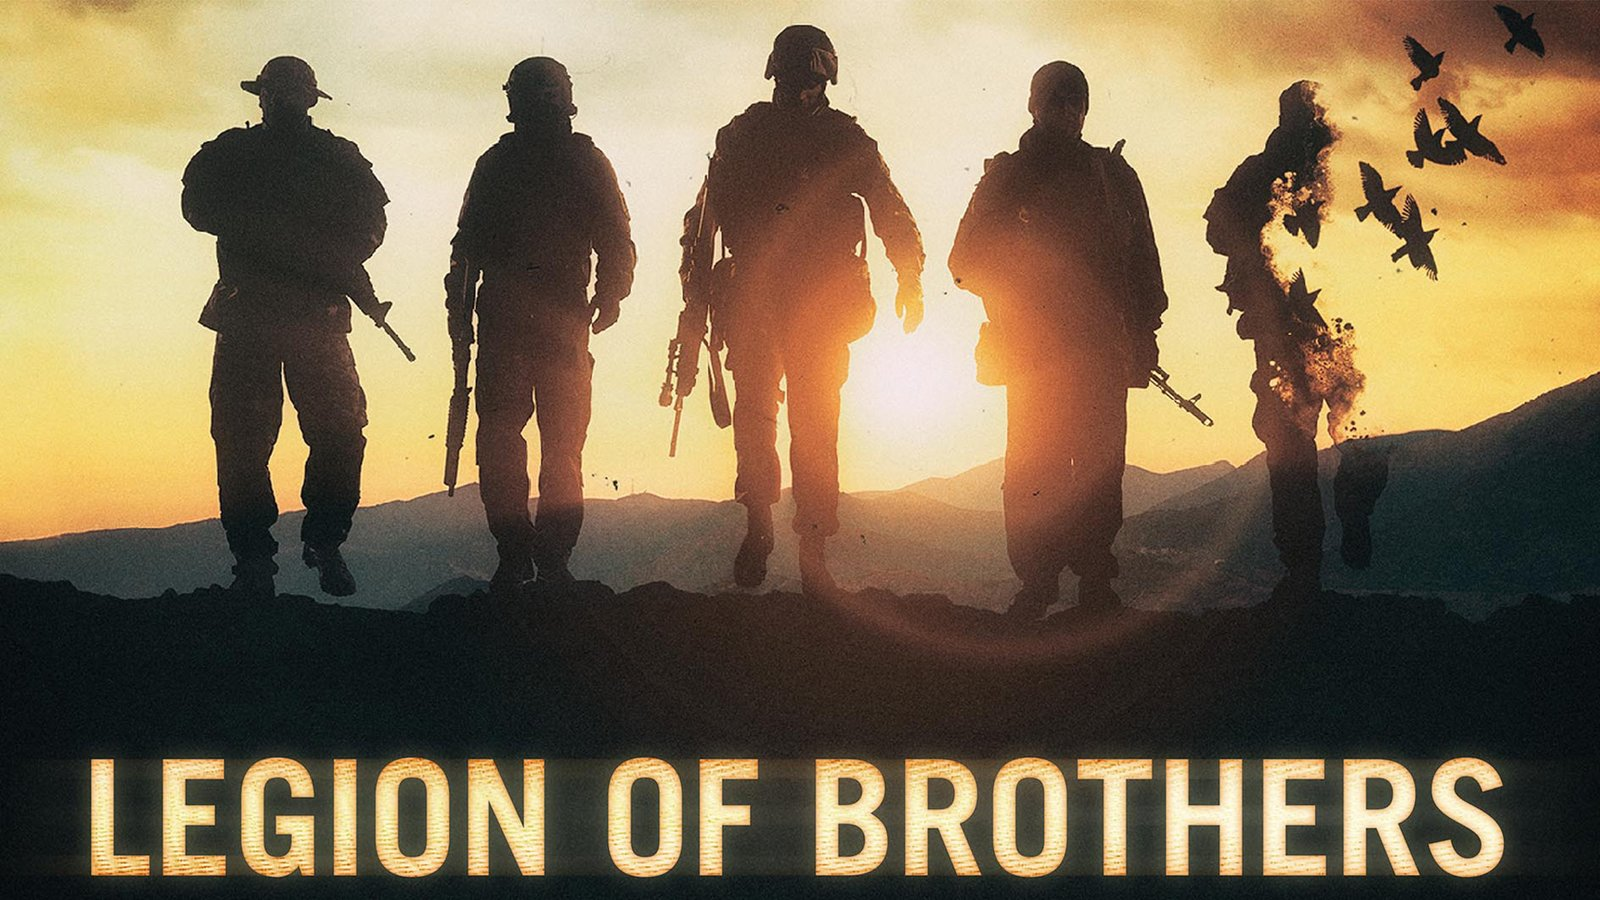 Legion of Brothers - The Secret Mission to Overthrow the Taliban